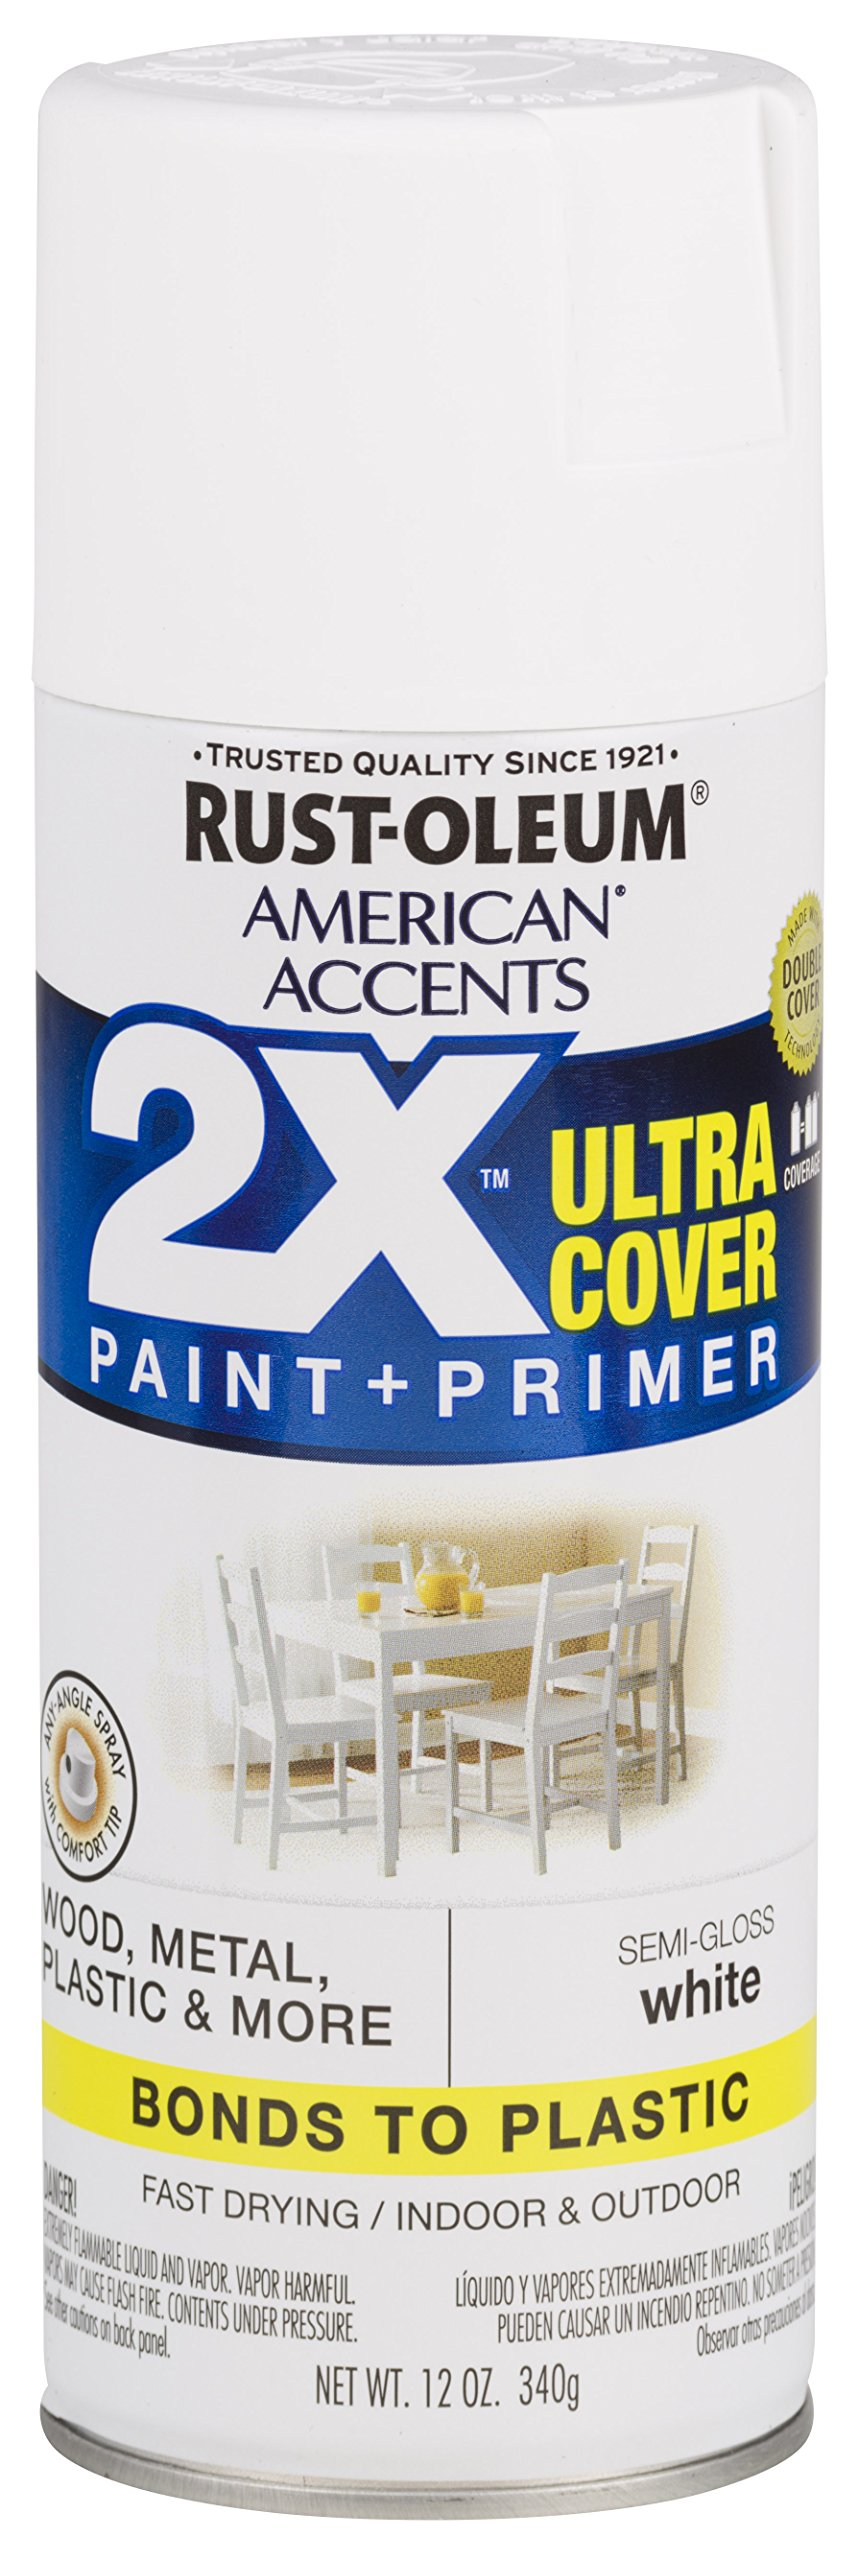 Rust-Oleum 327951-6 PK American Accents Spray Paint, Semi-Gloss White by Rust-Oleum